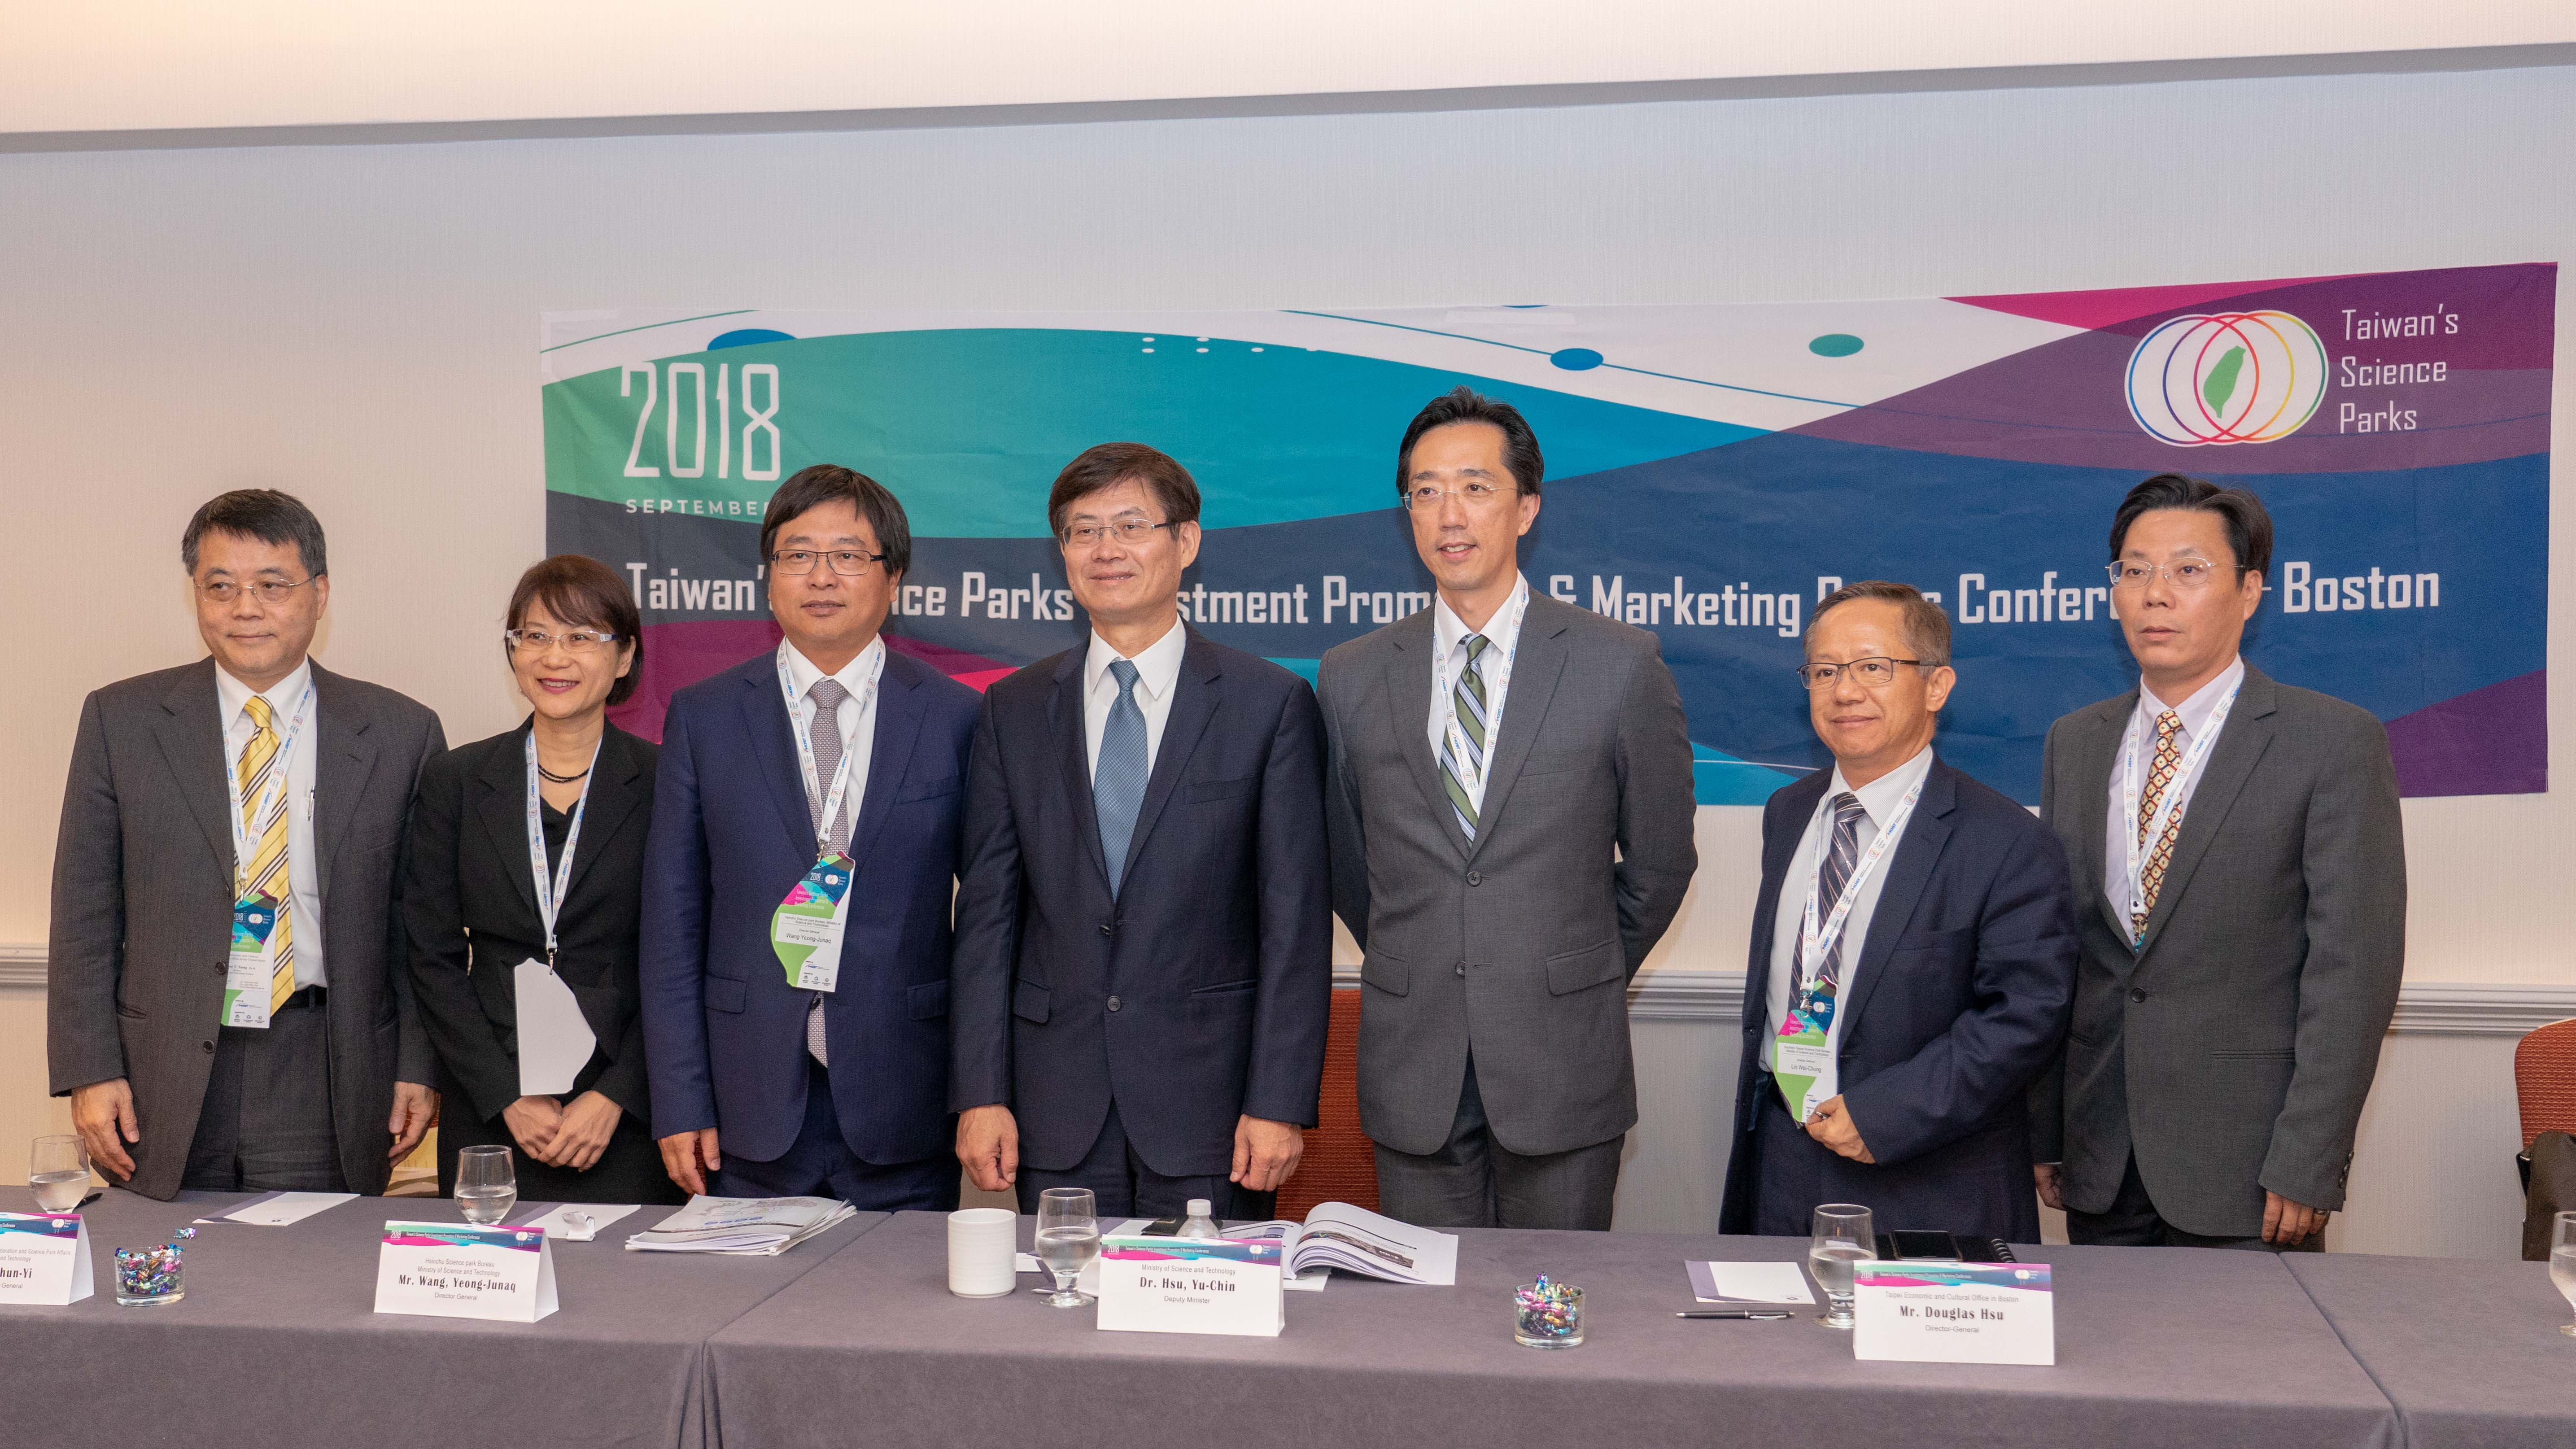 n Science Parks Investment Promotion and Marketing Conference in Boston-Group photo